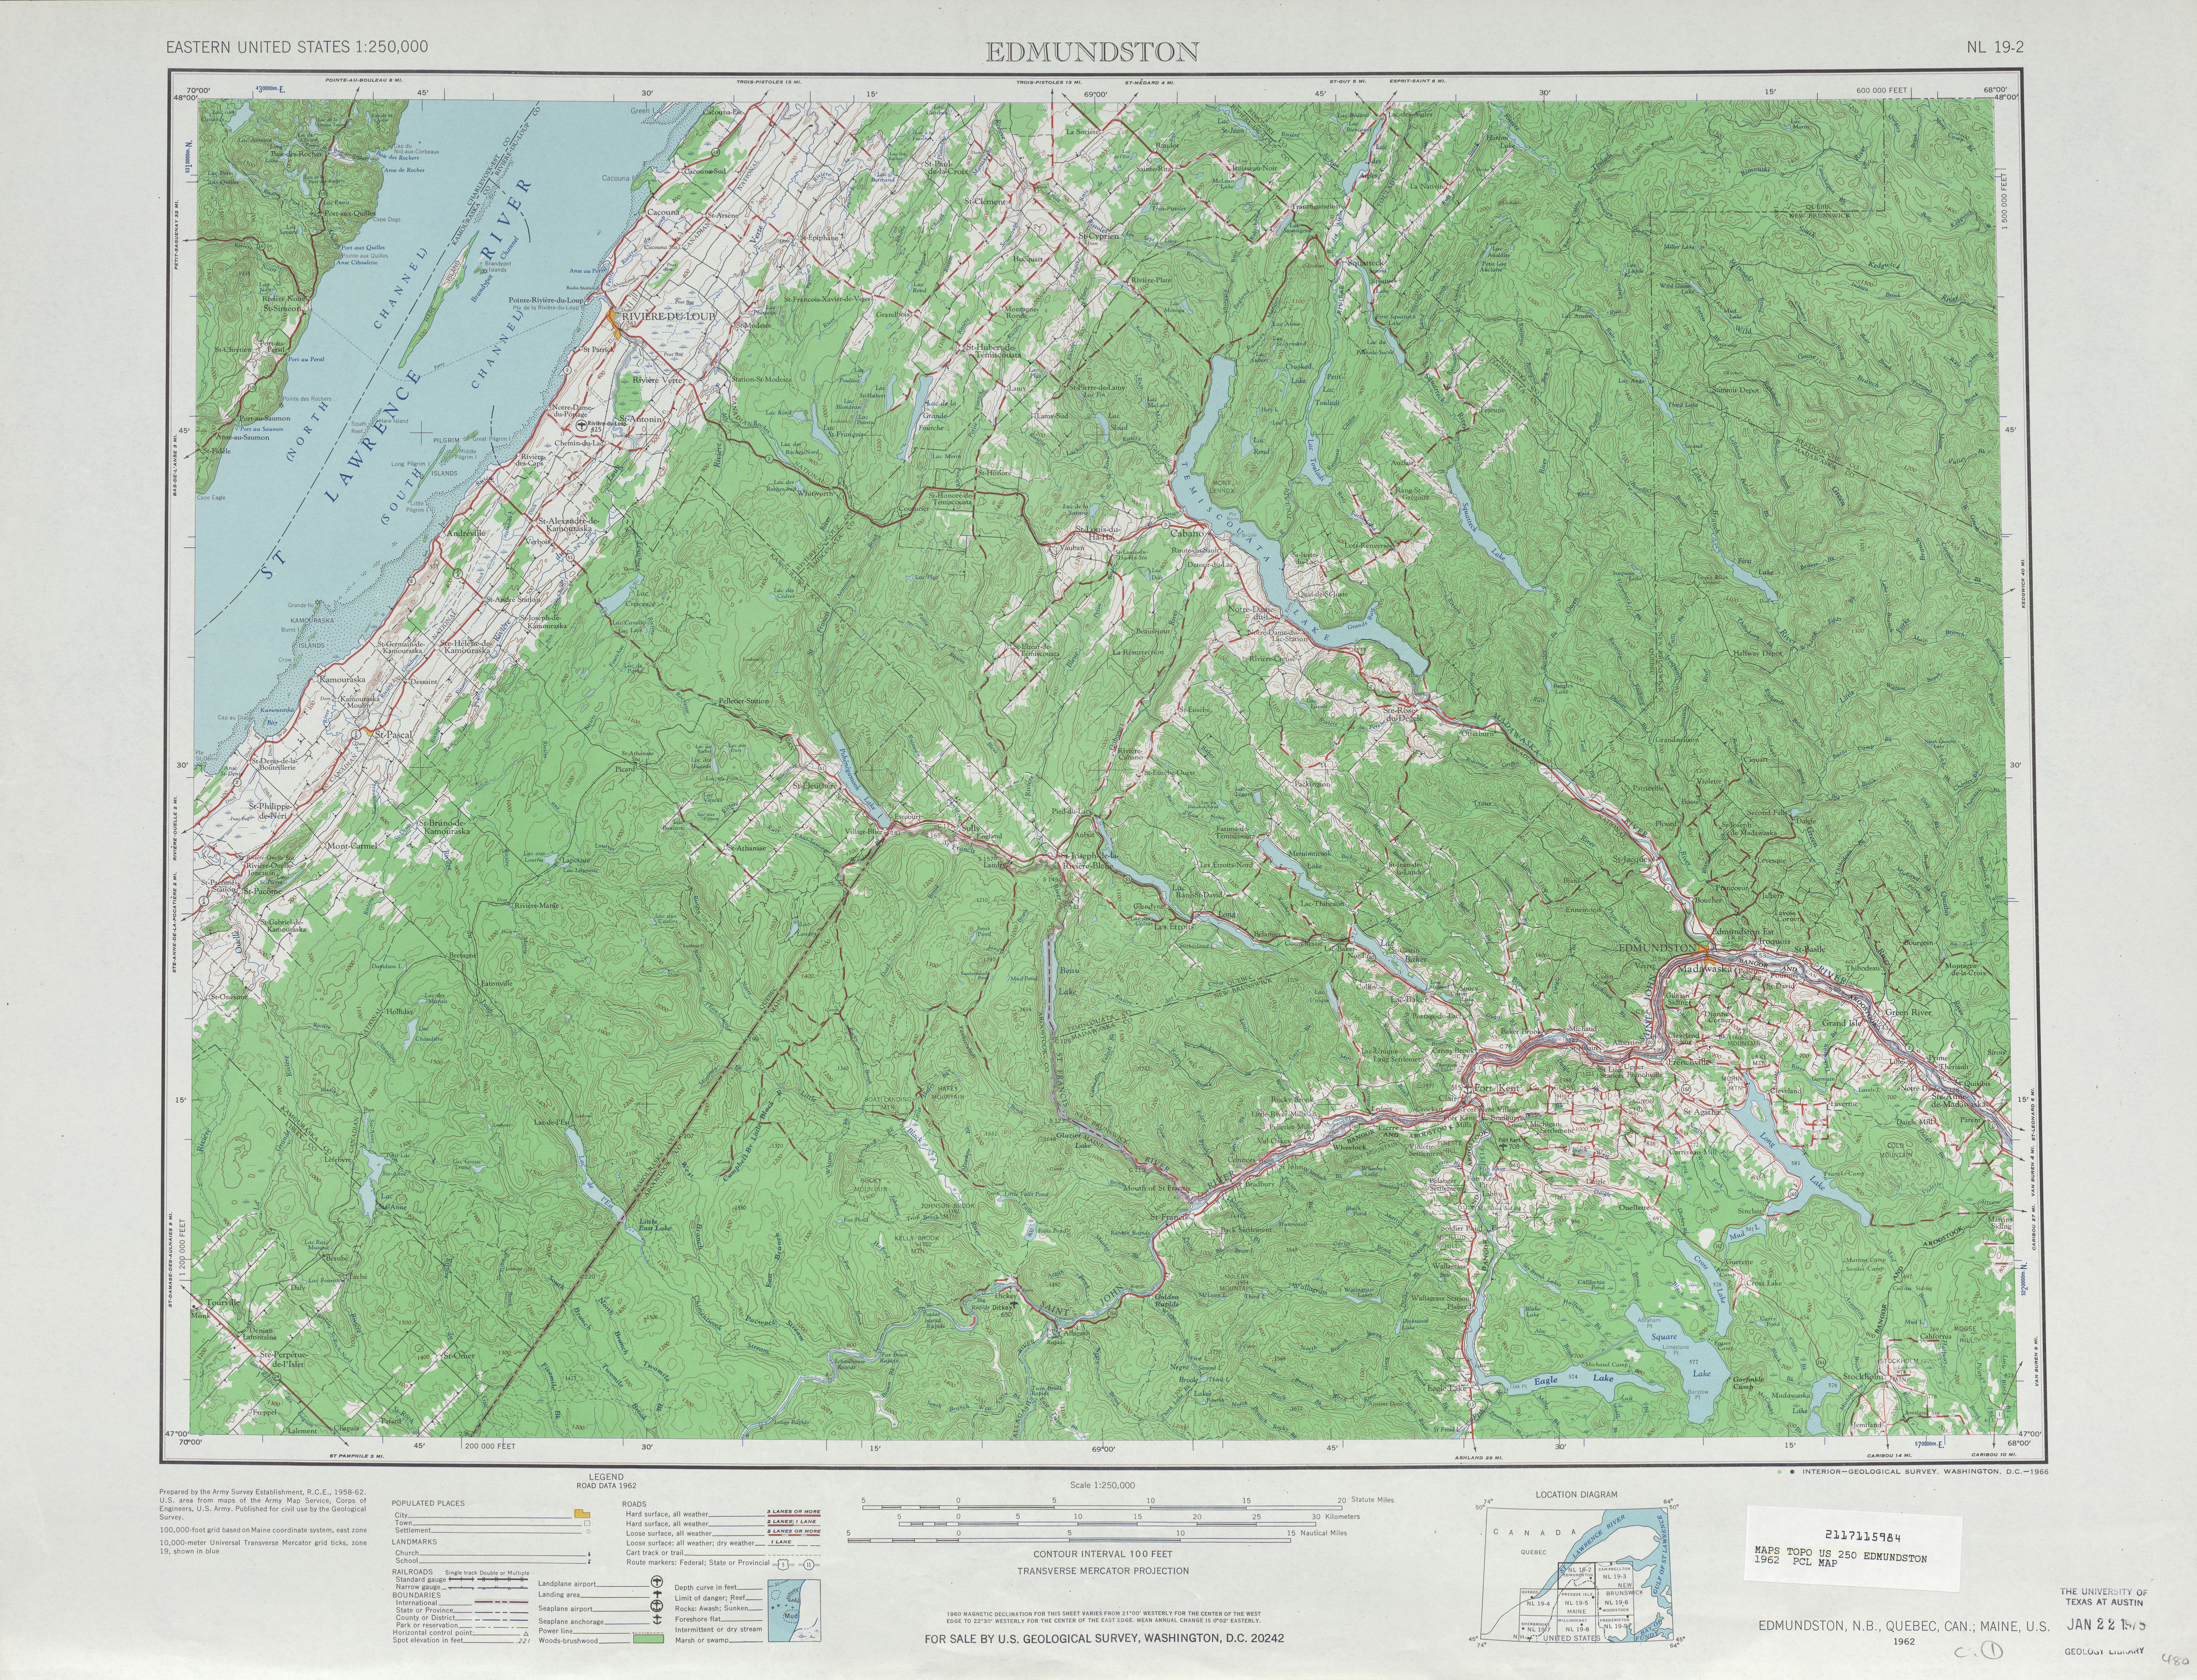 Edmundston Topographic Map Sheet, United States 1962